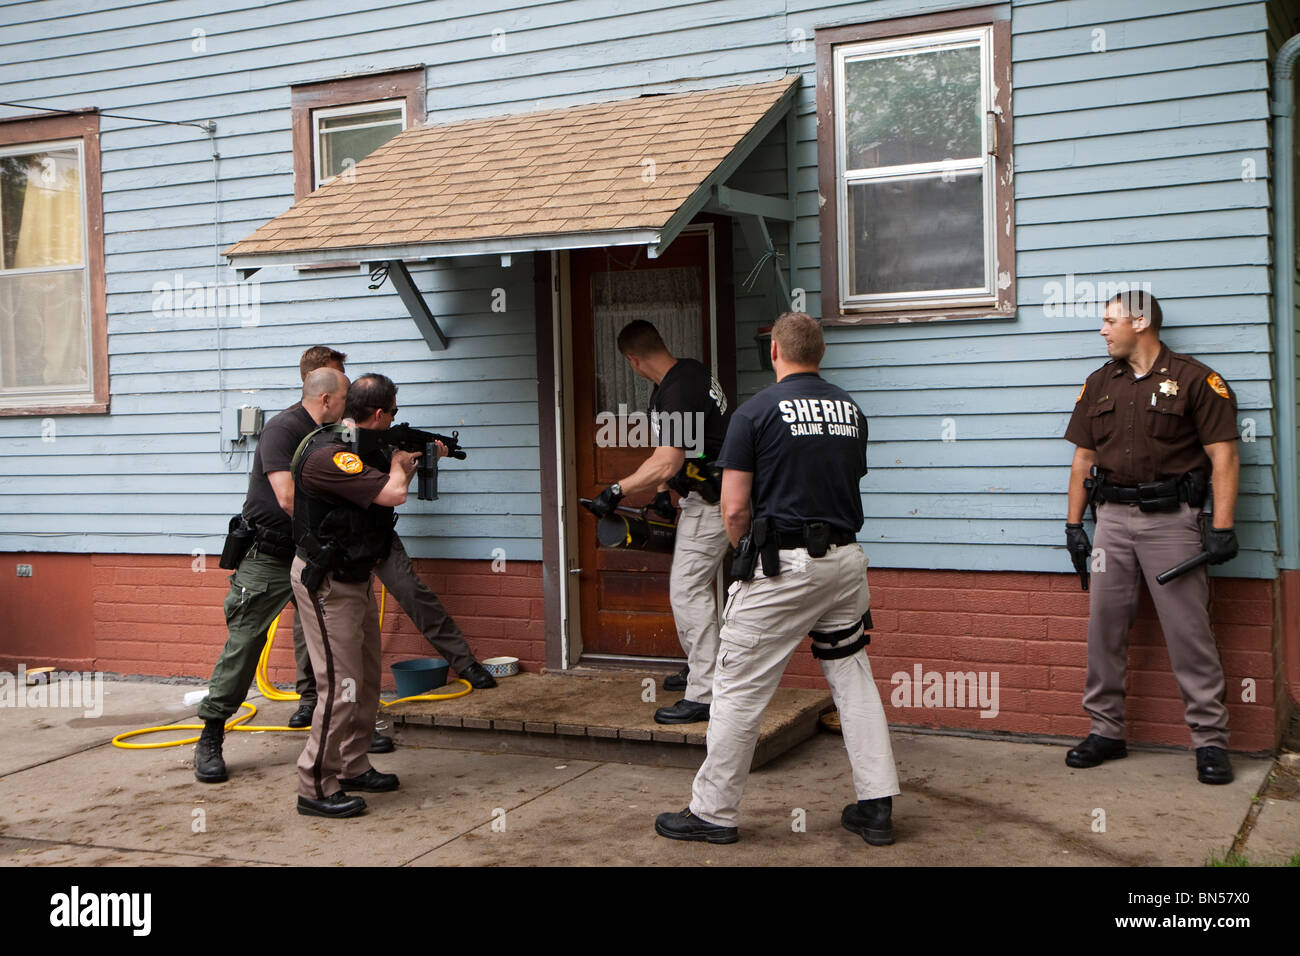 Deputy sheriff's serving drug related search warrant in a rural US community. Narcotics were located inside - Stock Image